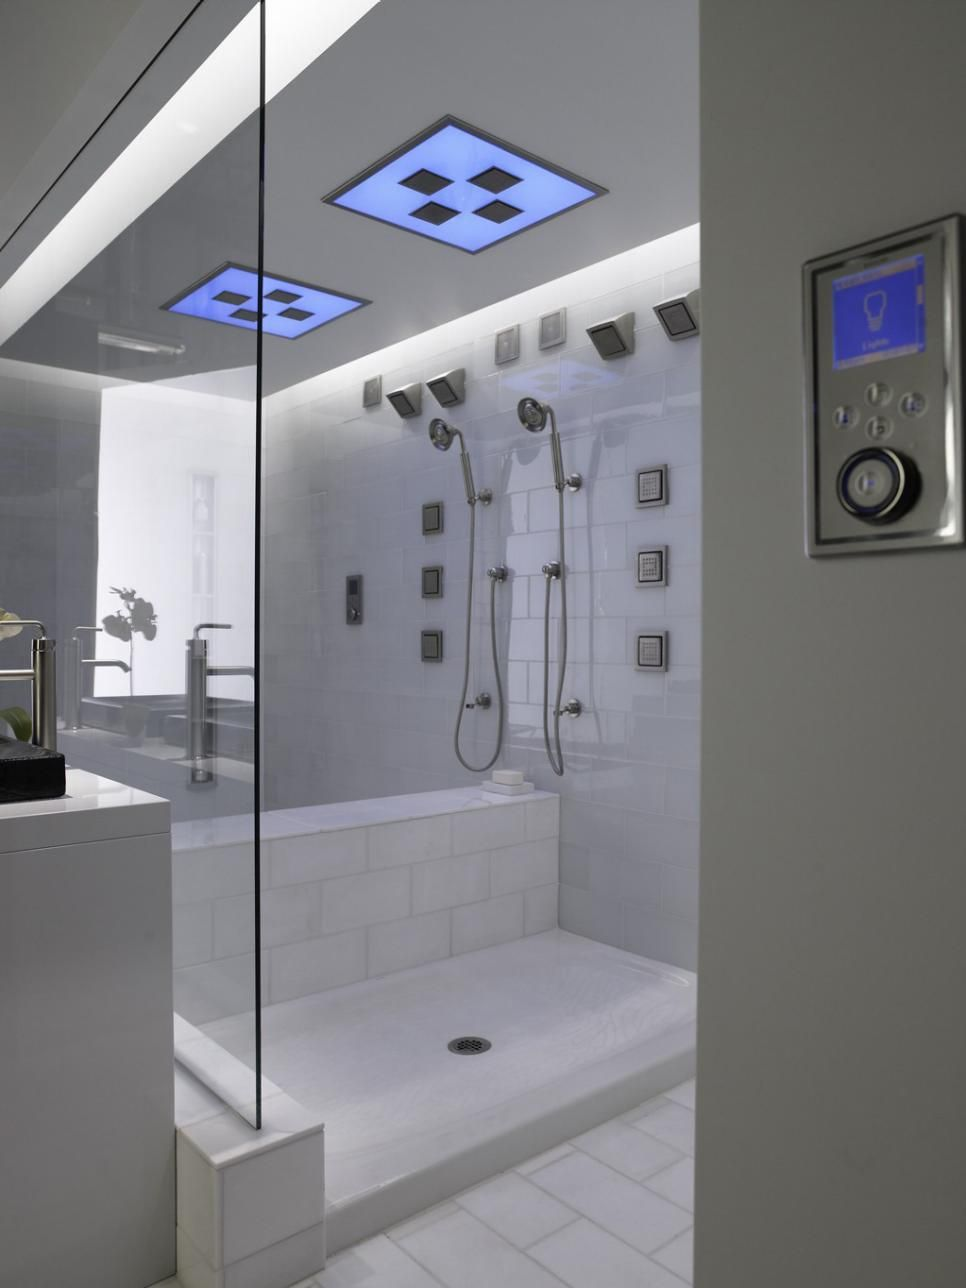 Bathroom Remodel Trends Bathroom Remodel Trends Bathroom - 10 best bathroom remodeling trends